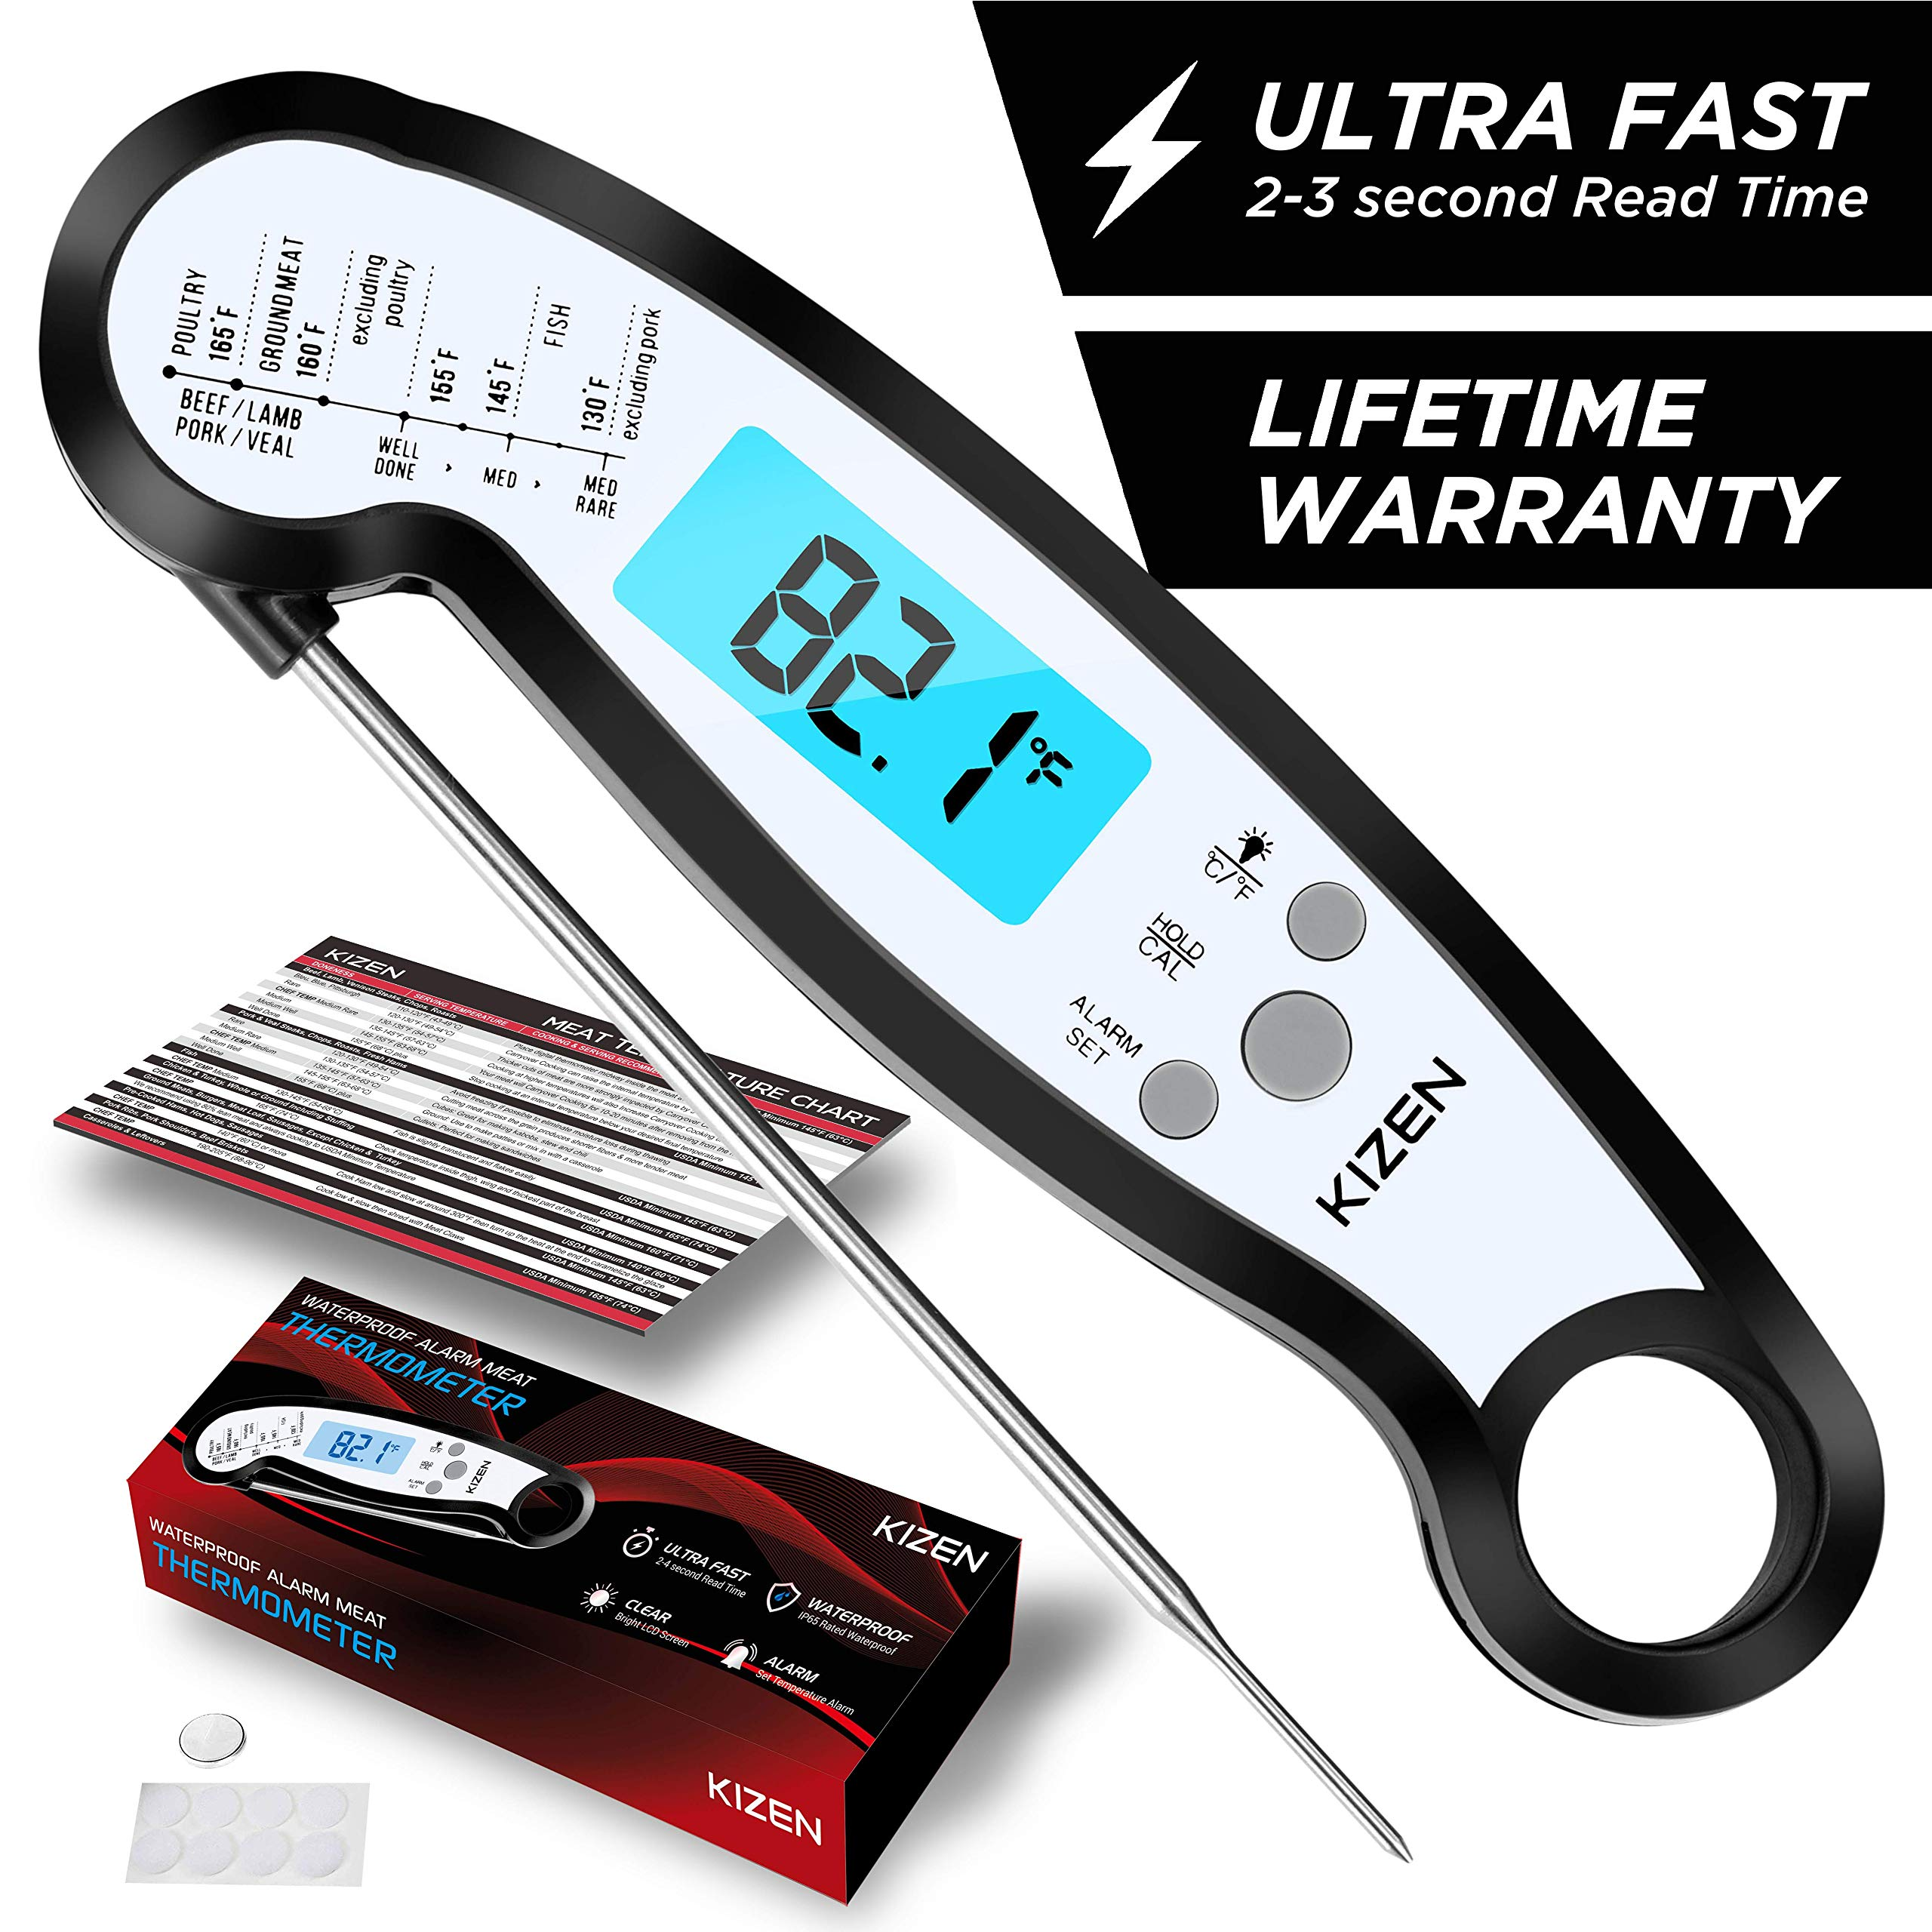 Kizen Instant Read Meat Thermometer - Best Waterproof Alarm Thermometer with Backlight & Calibration. Kizen Digital Food Thermometer for Kitchen, Outdoor Cooking, BBQ, and Grill! by Kizen